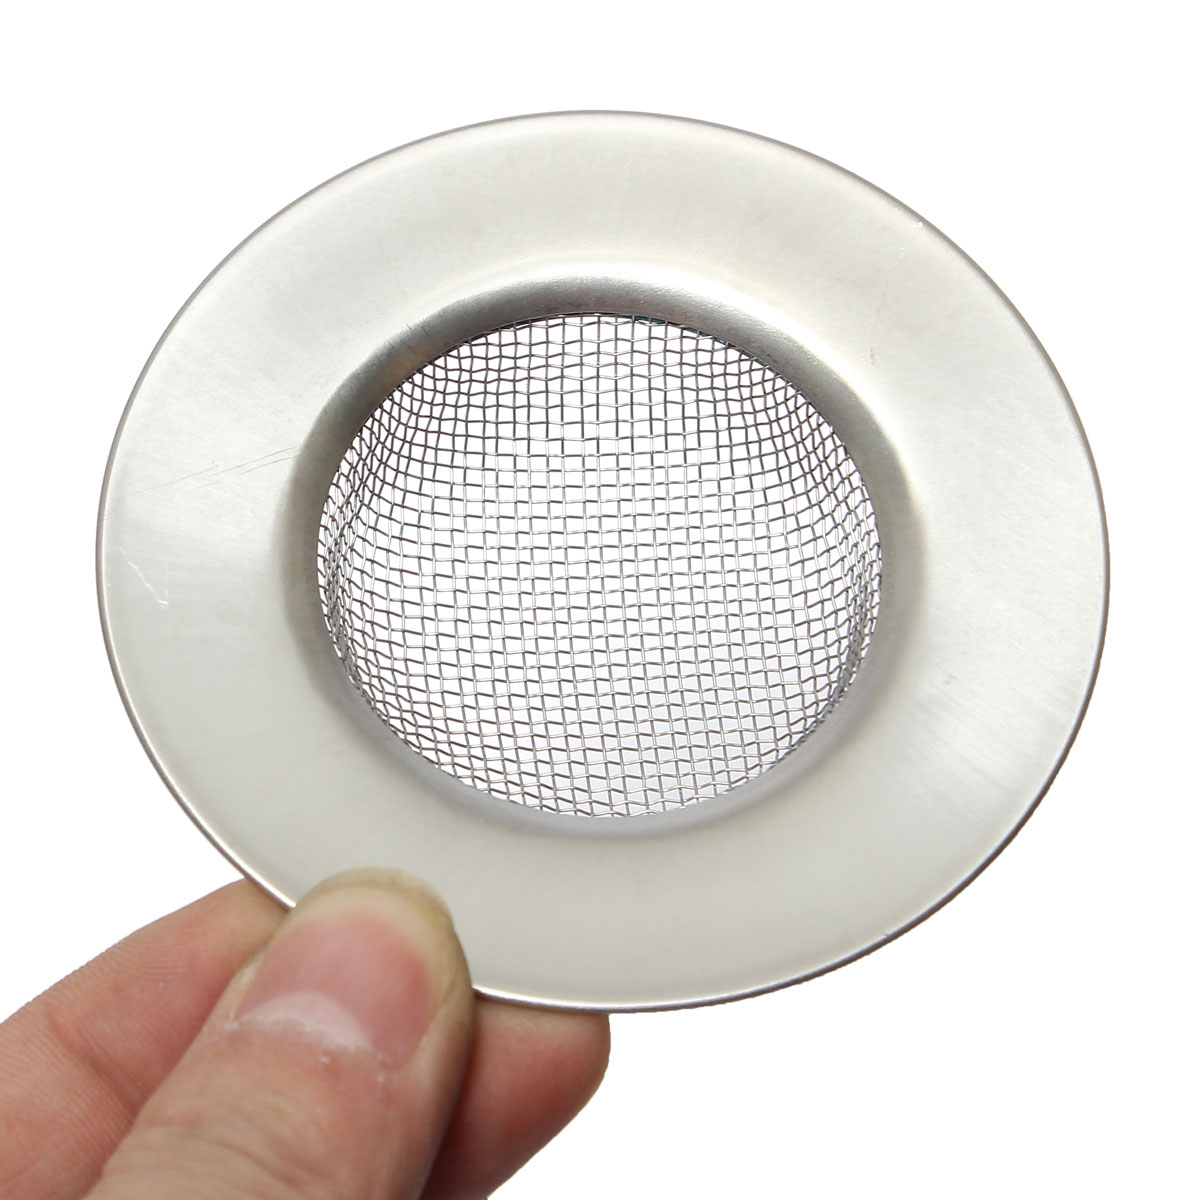 Kitchen Bath Basin Sink Drain Strainer Waste Hair Mesh Filter Stopper Plug Cover